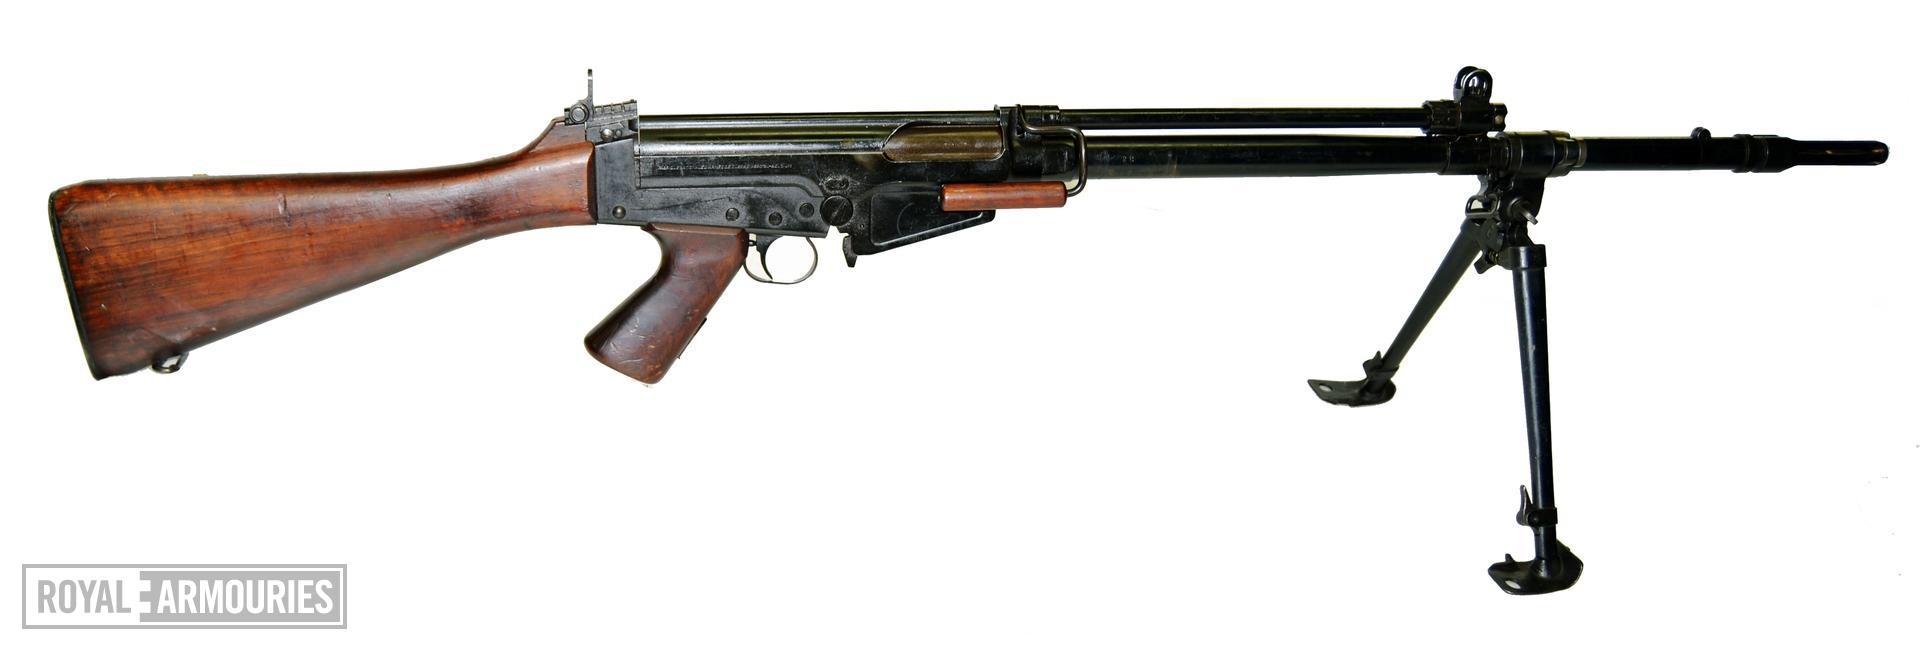 Centrefire automatic rifle FN X8E6 Experimental. Rifle, Self-loading, Experimental, 7.62 mm FN X8E6 Heavy Barre with bipod extended (SN - 28) X.906